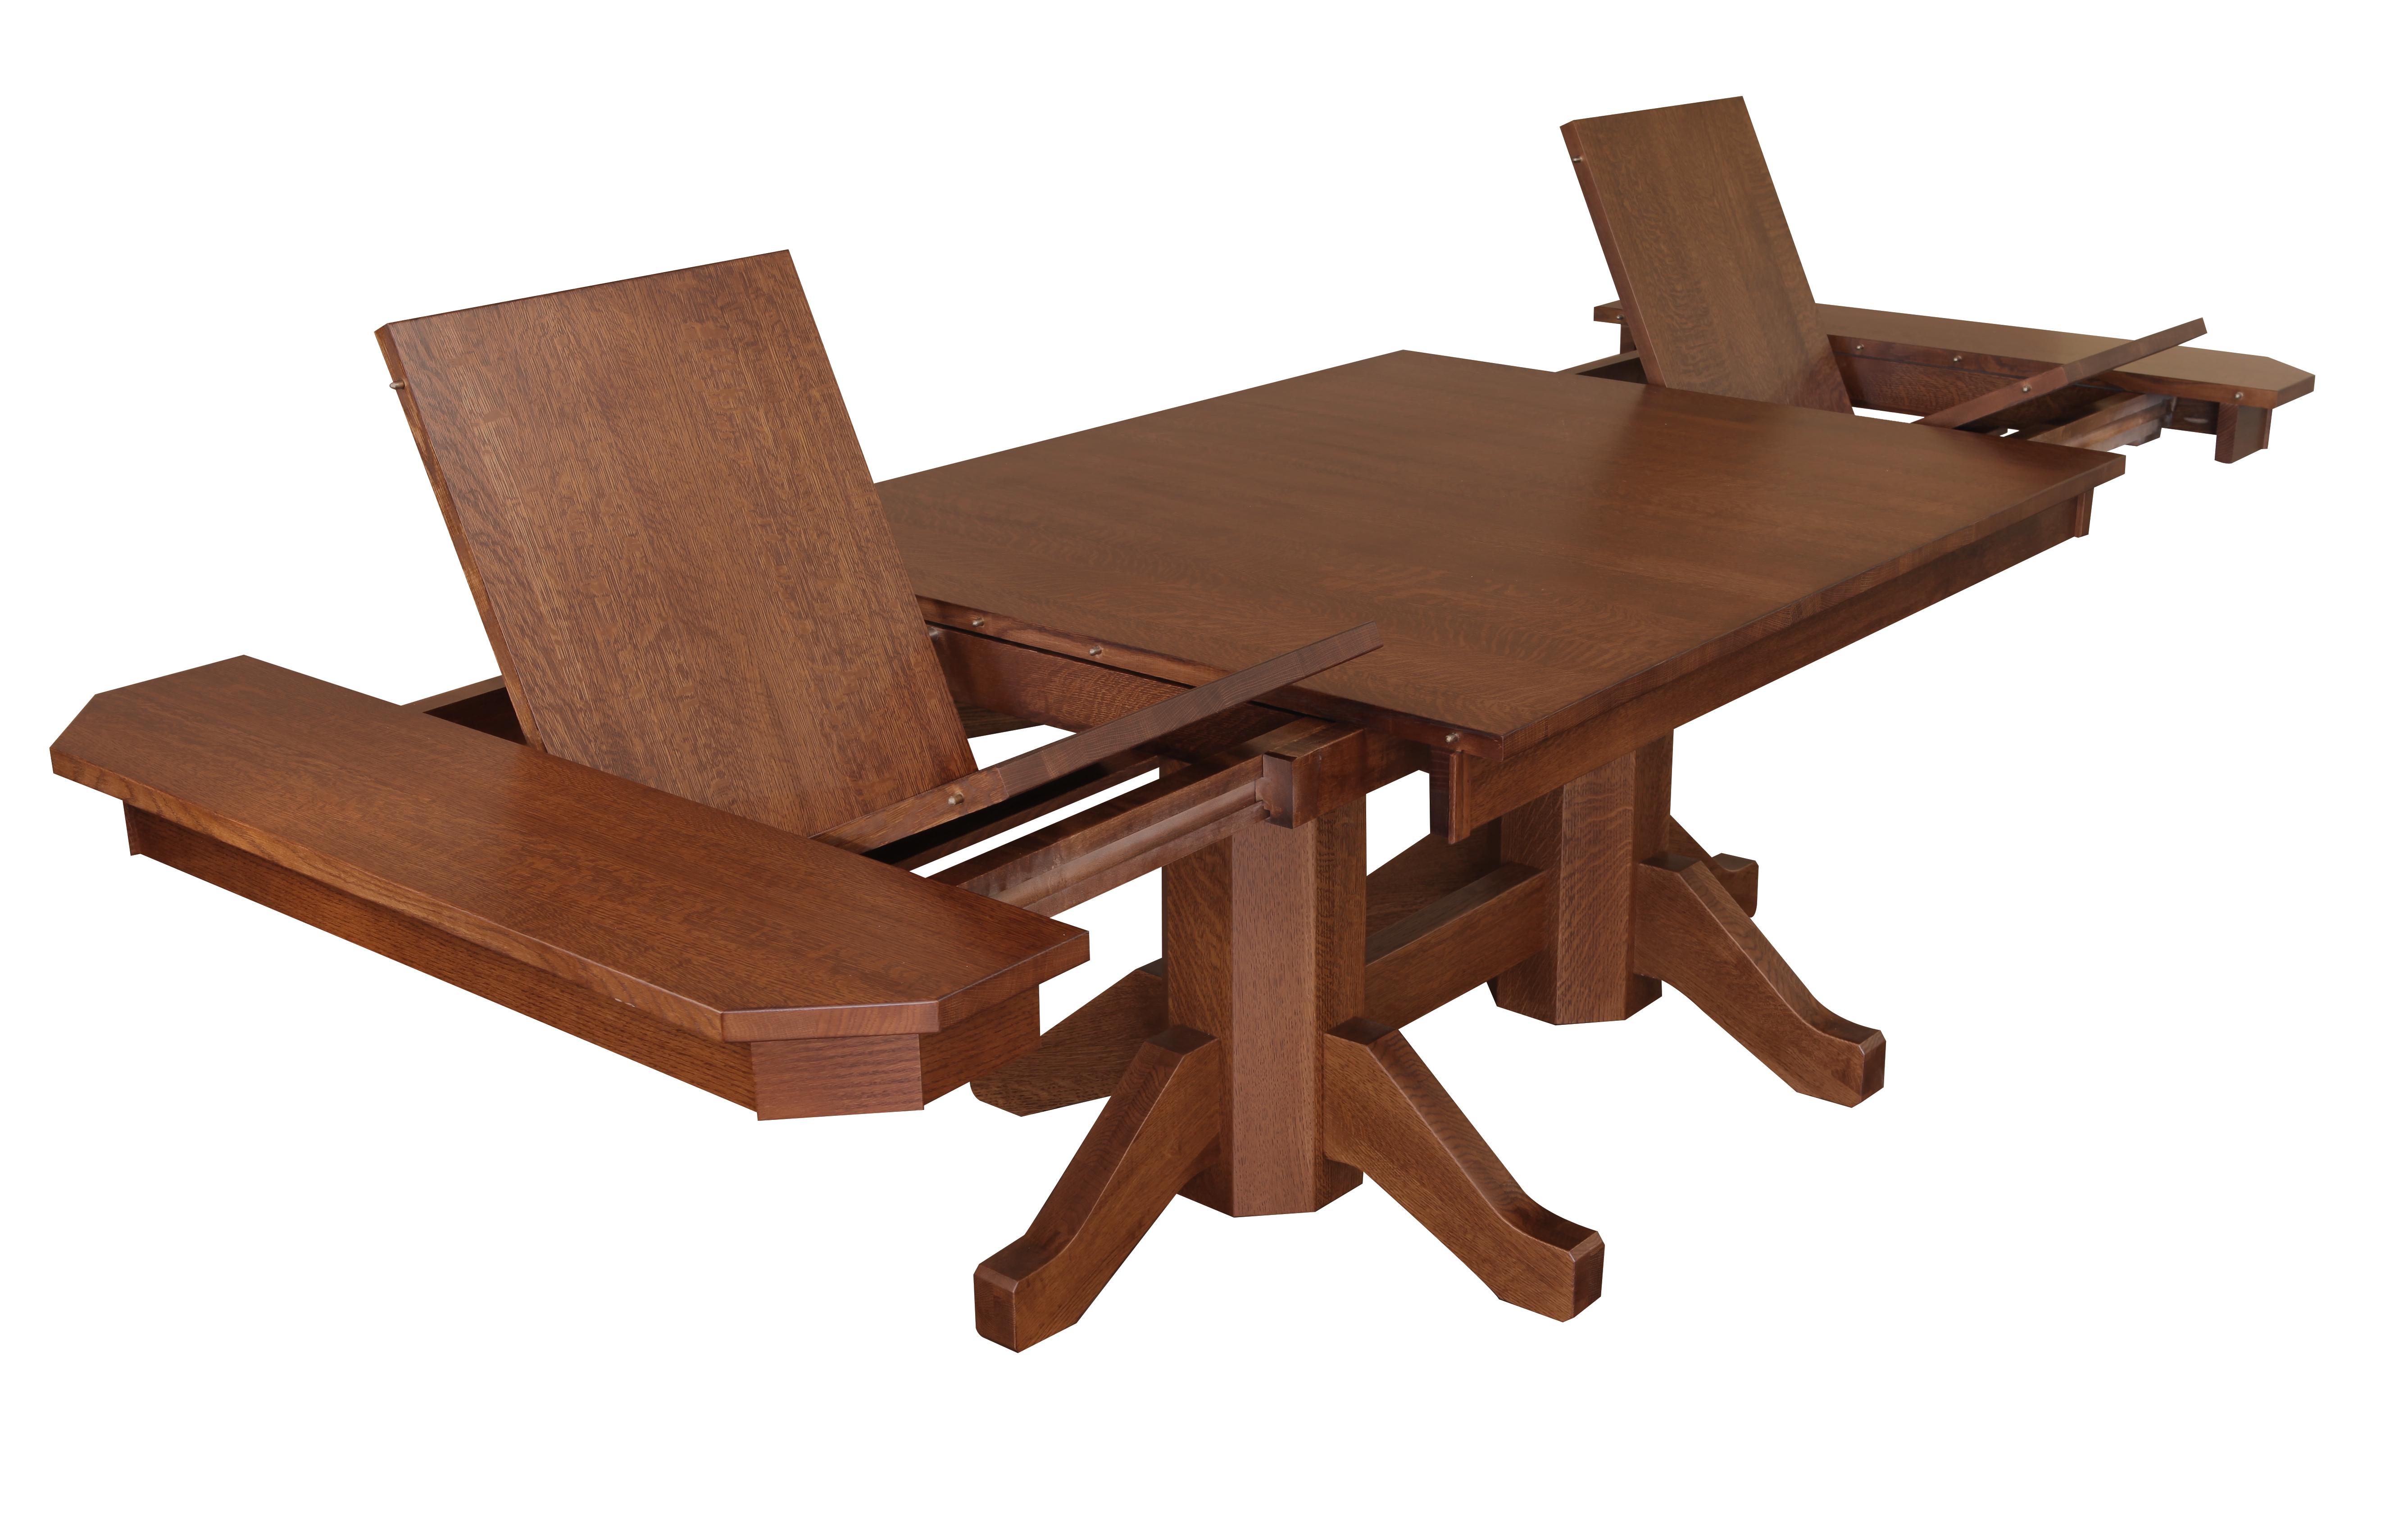 All About Tables Finding The Right Type For Your Needs